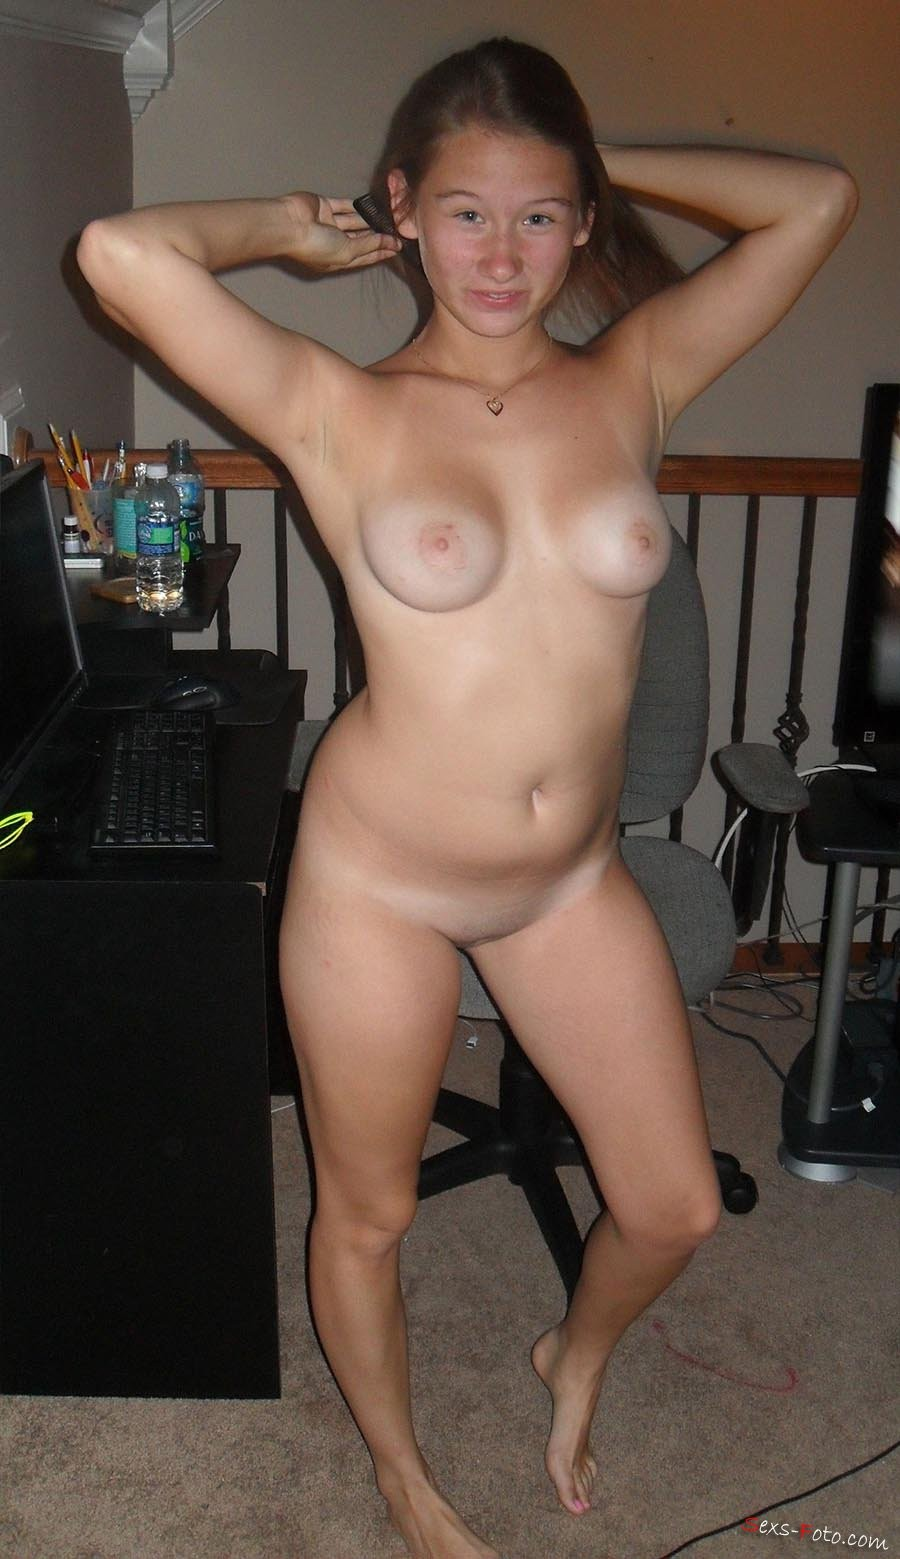 ebony sex free email newsletters – Amateur